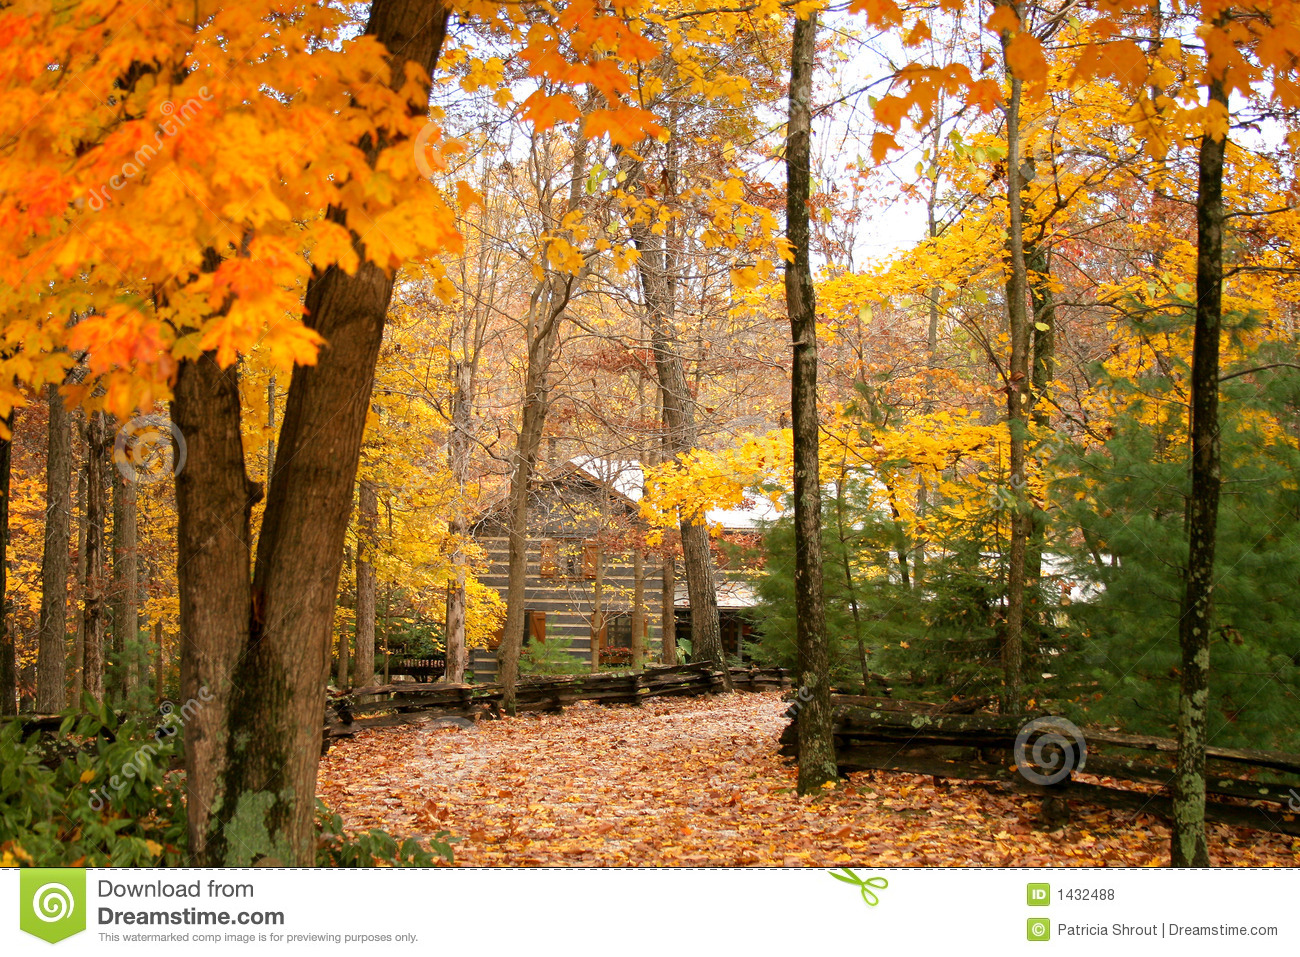 Cabin in the woods with autumn